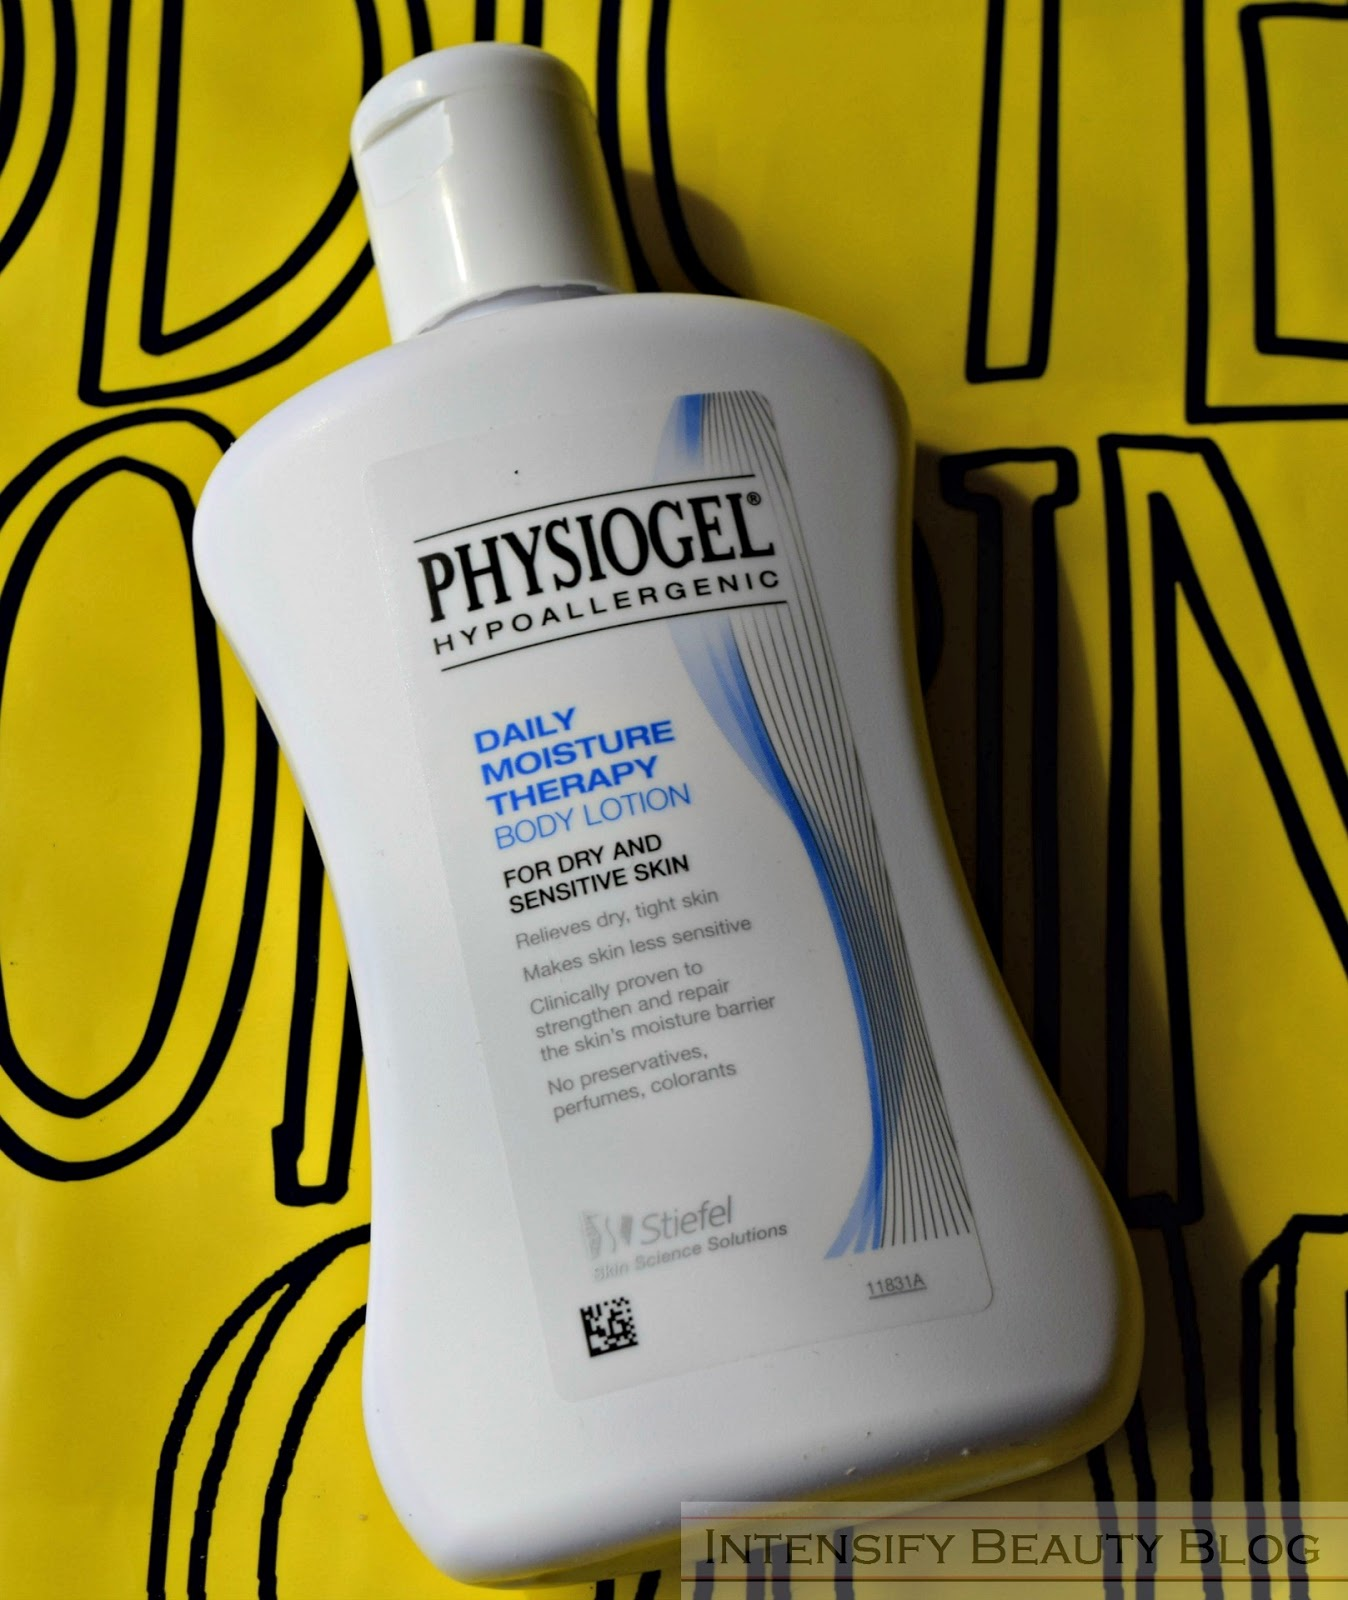 The 14 Days Physiogel Challenge Intensify Beauty Blog Daily Moisture Care Body Lotion 200ml For Dry And Sensitive Skin